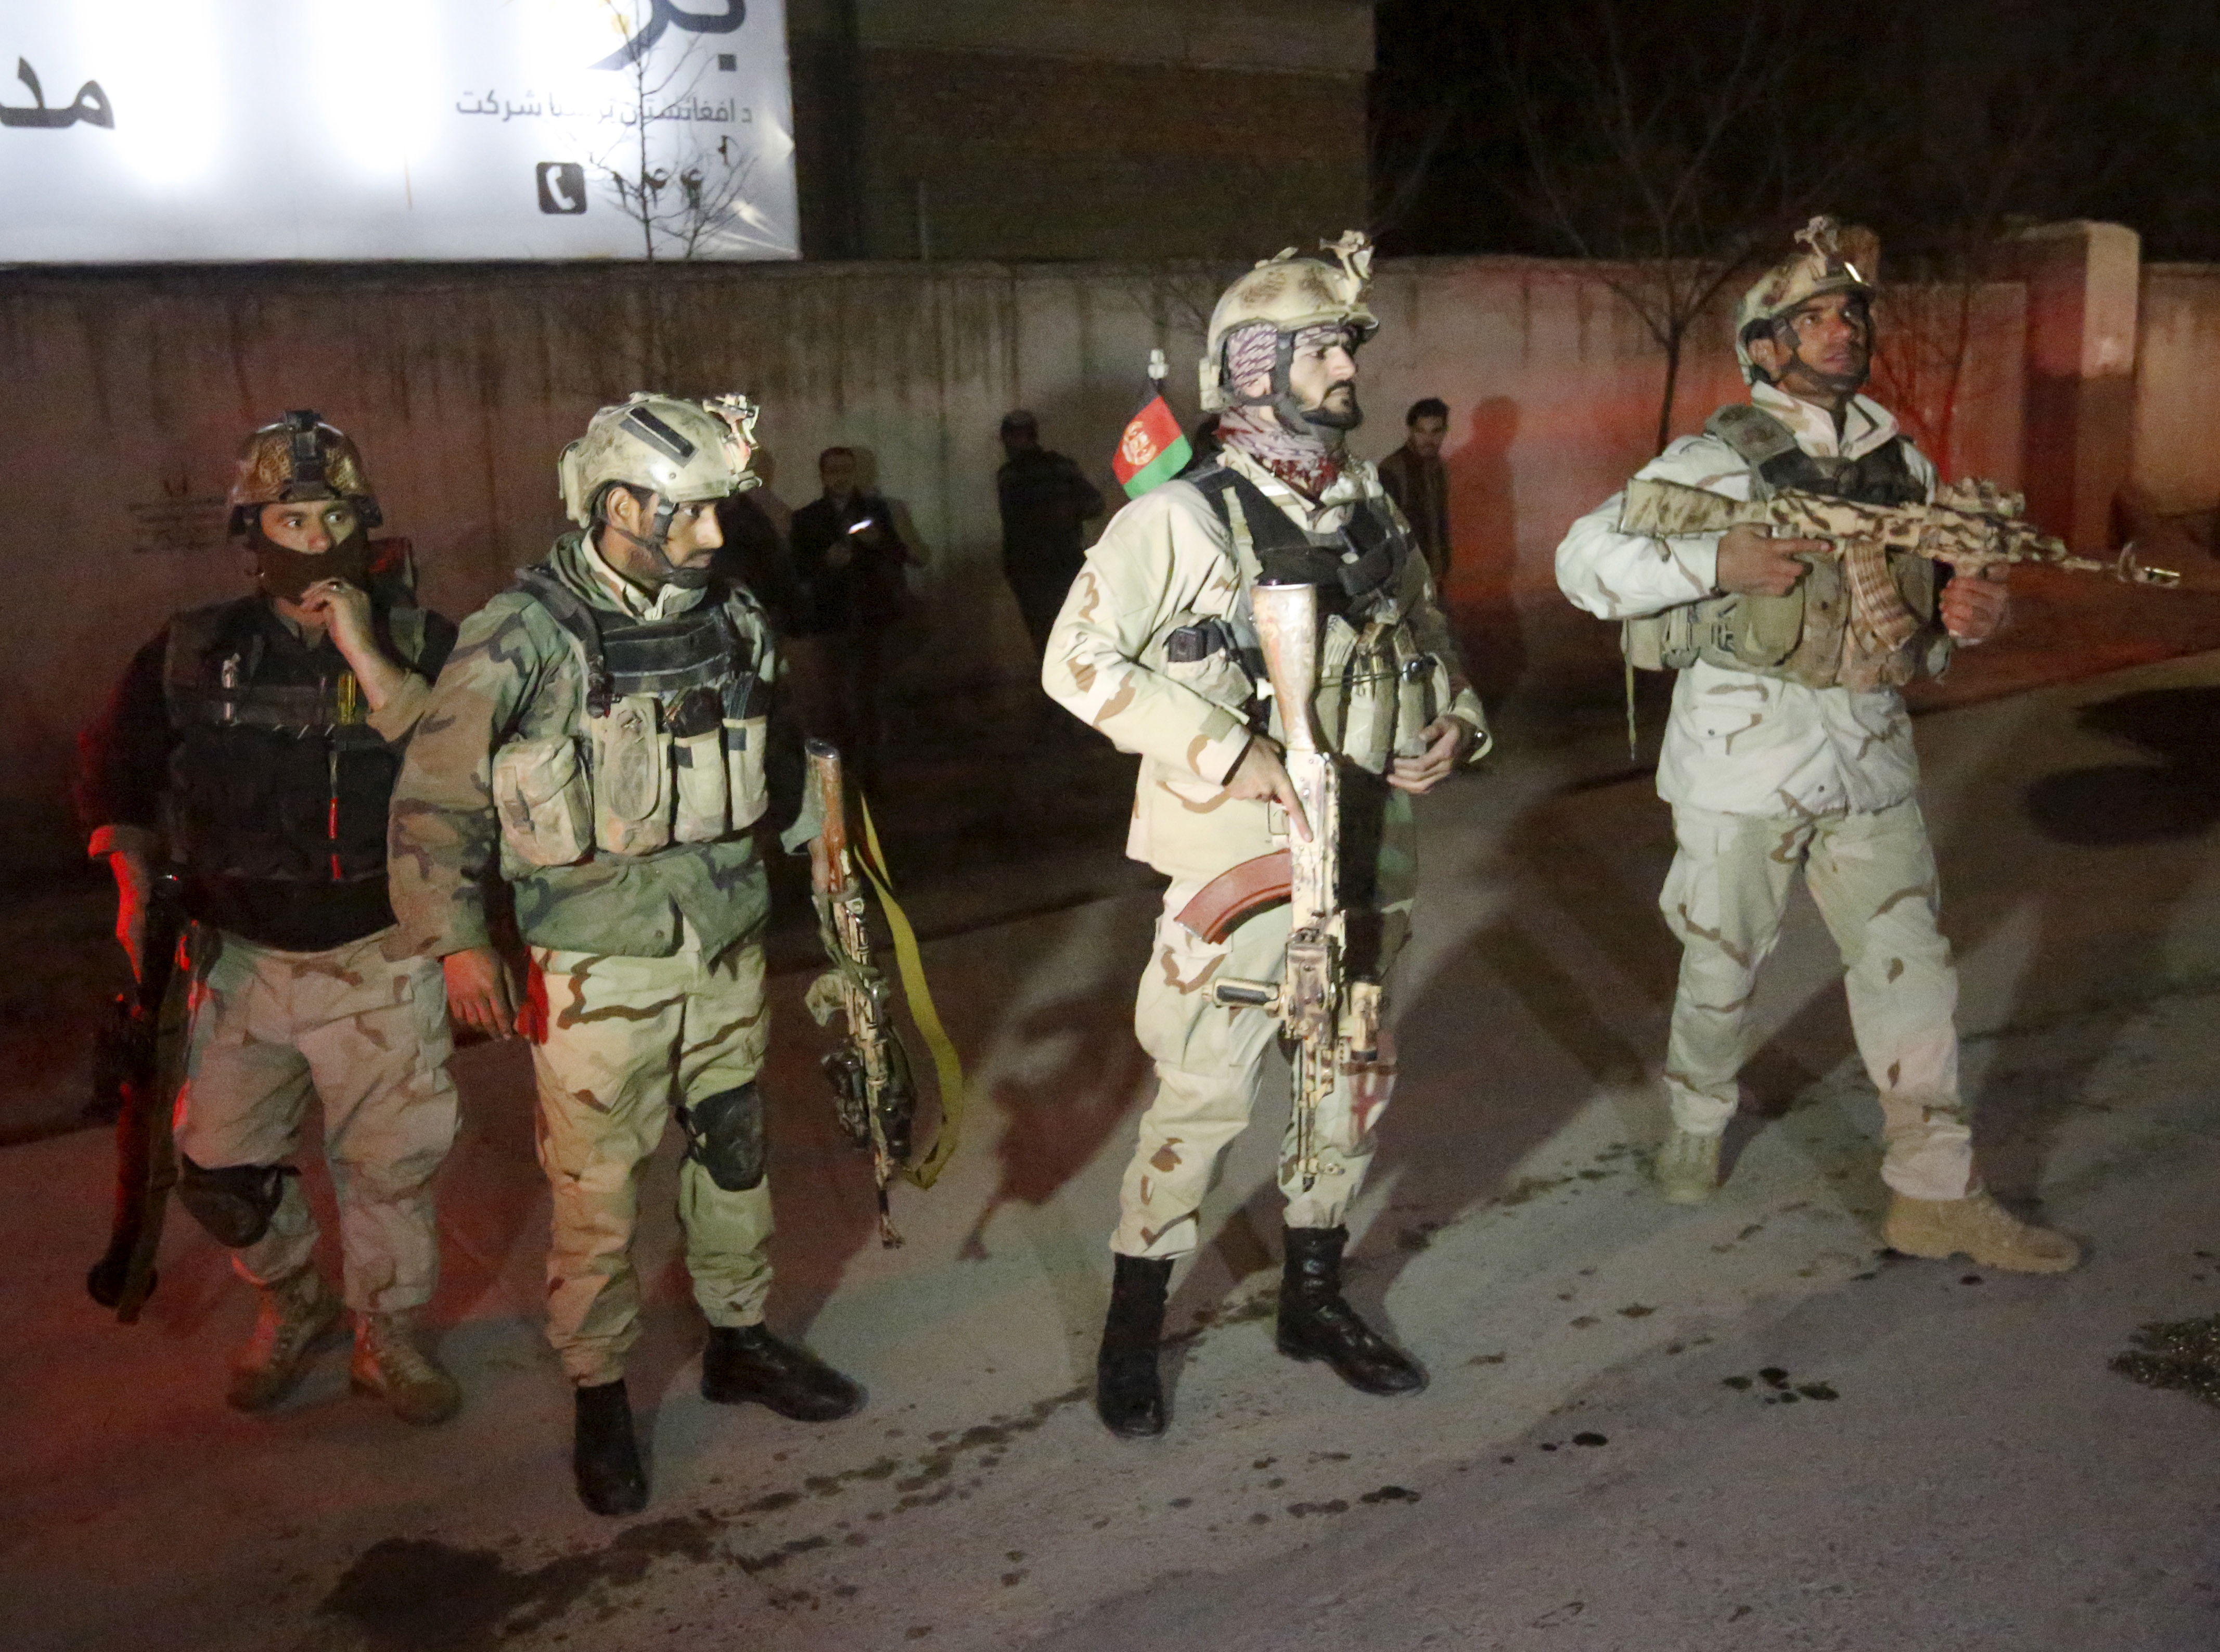 Members of Afghan Crisis Response Unit (CRU) arrive at the site of a Taliban attack in the Afghan capital of Kabul, Afghanistan, Dec. 11, 2015.